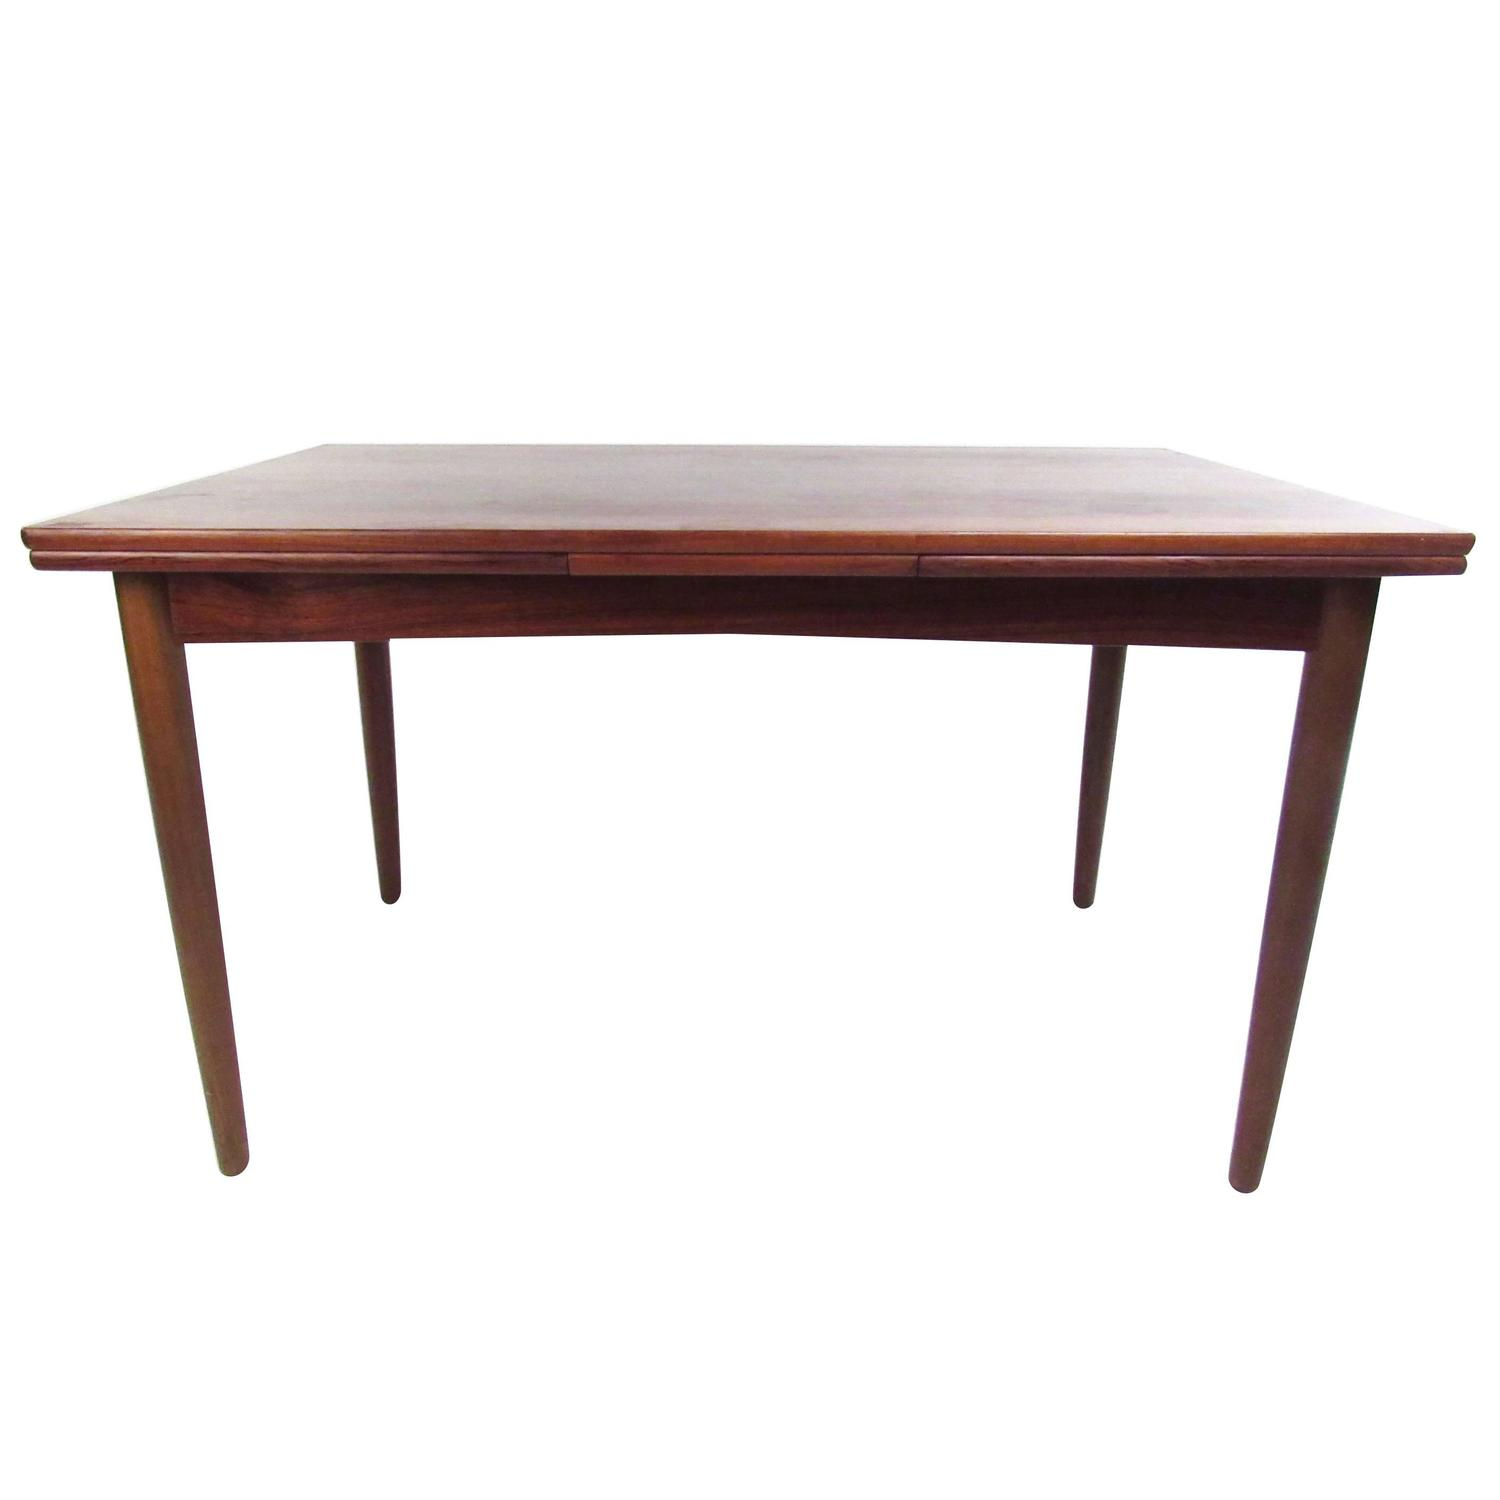 mid century danish rosewood expandable dining table by n o moller for sale at 1stdibs. Black Bedroom Furniture Sets. Home Design Ideas